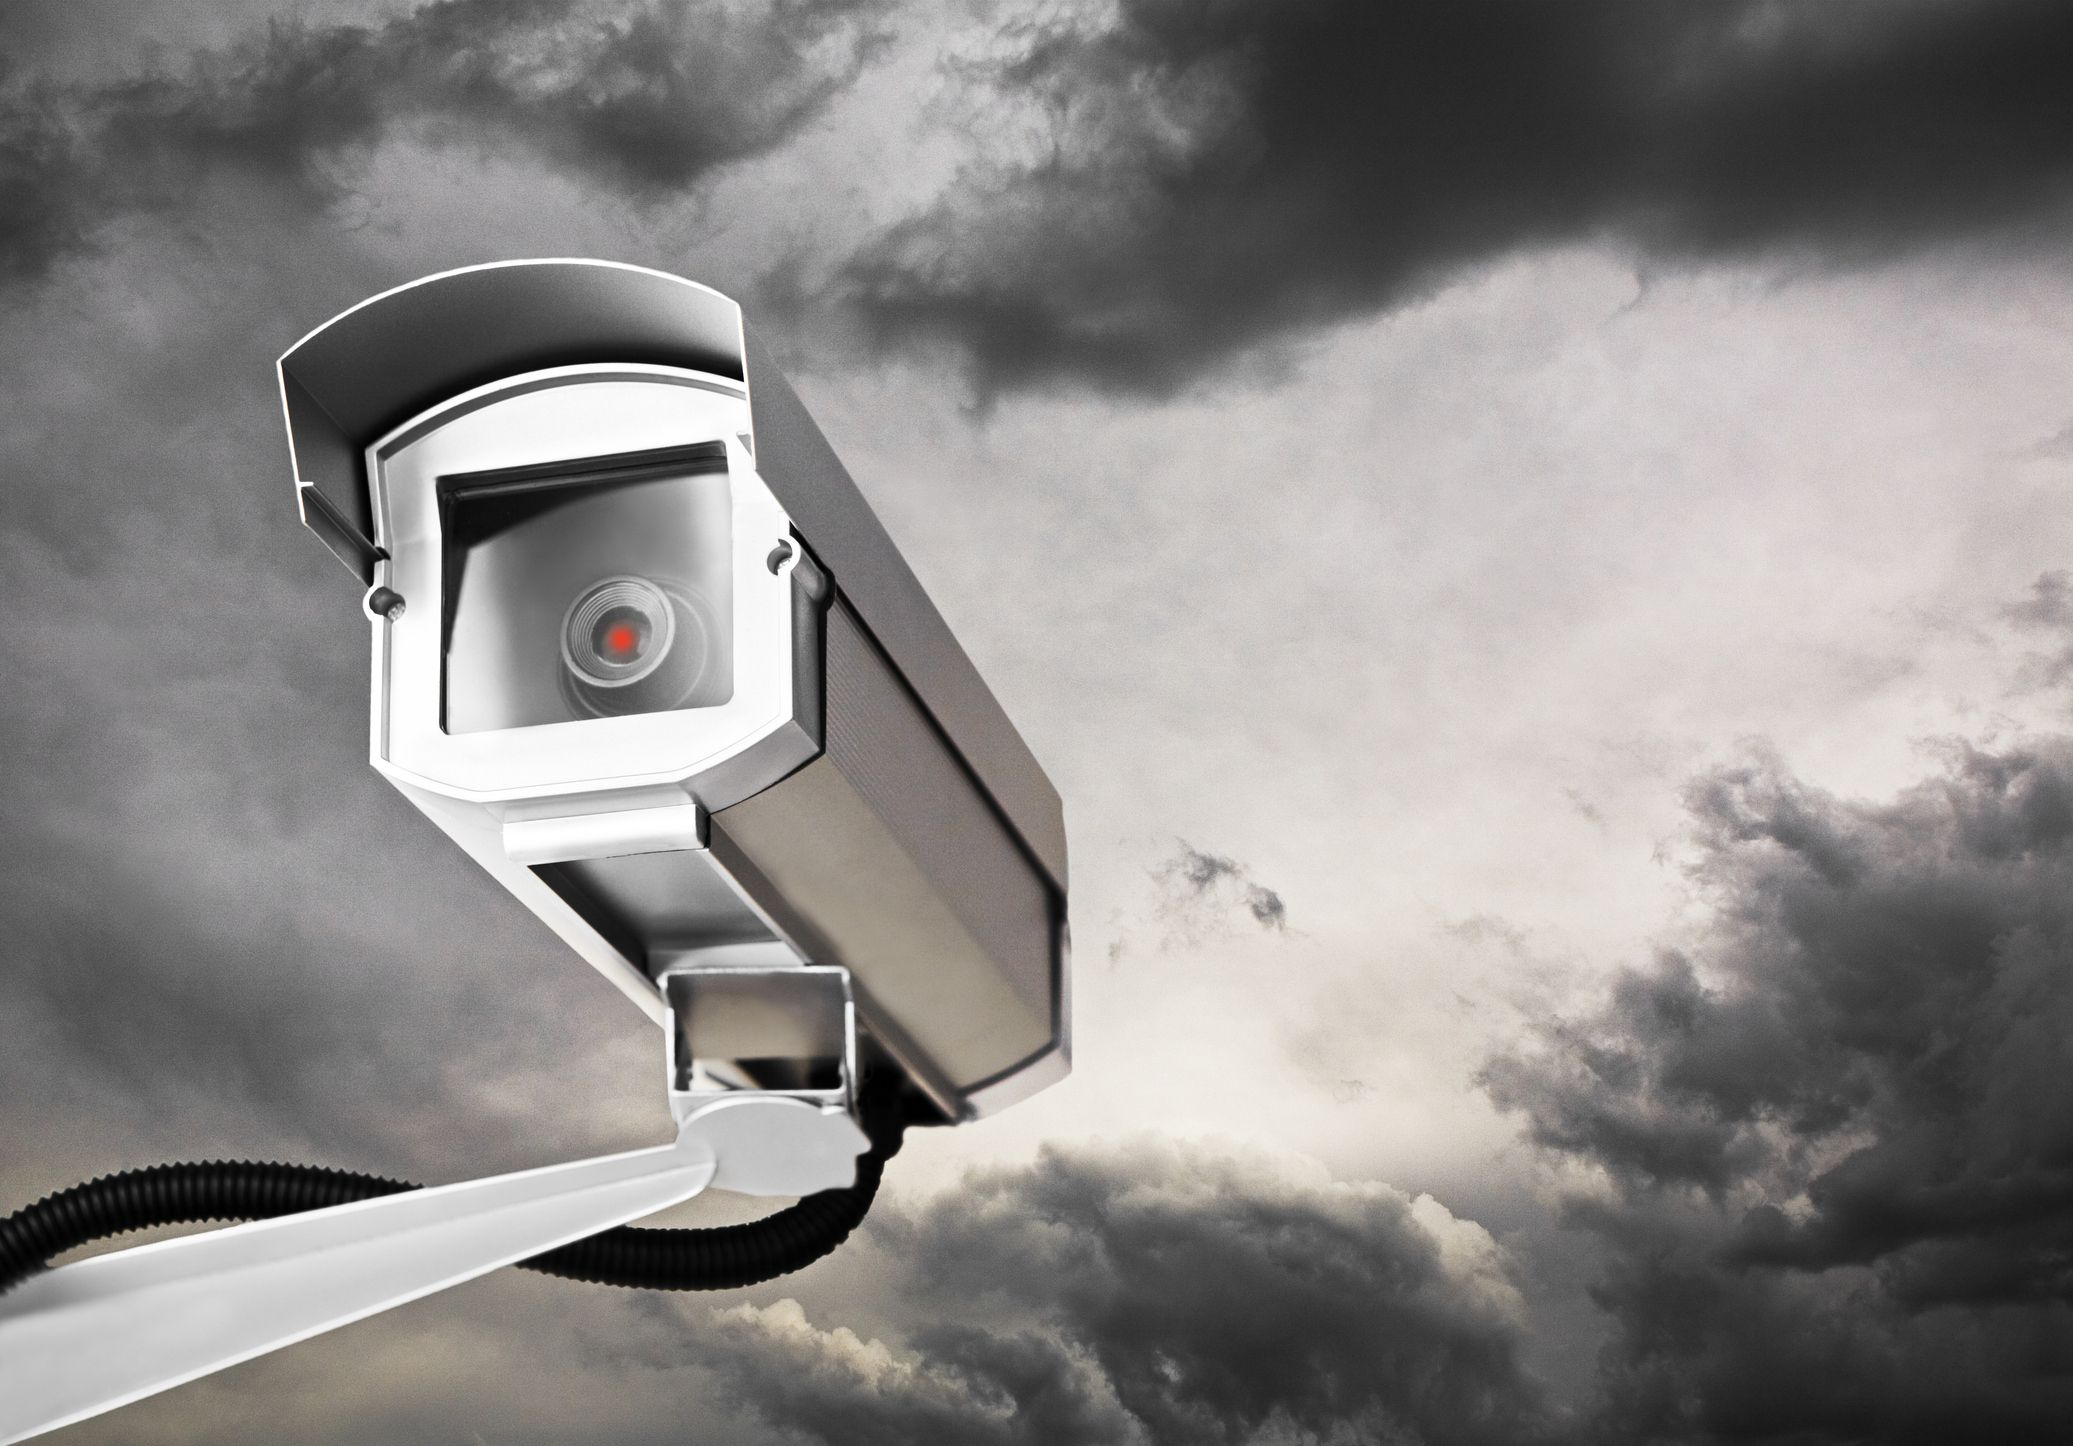 The Best Positions To Install Security Cameras